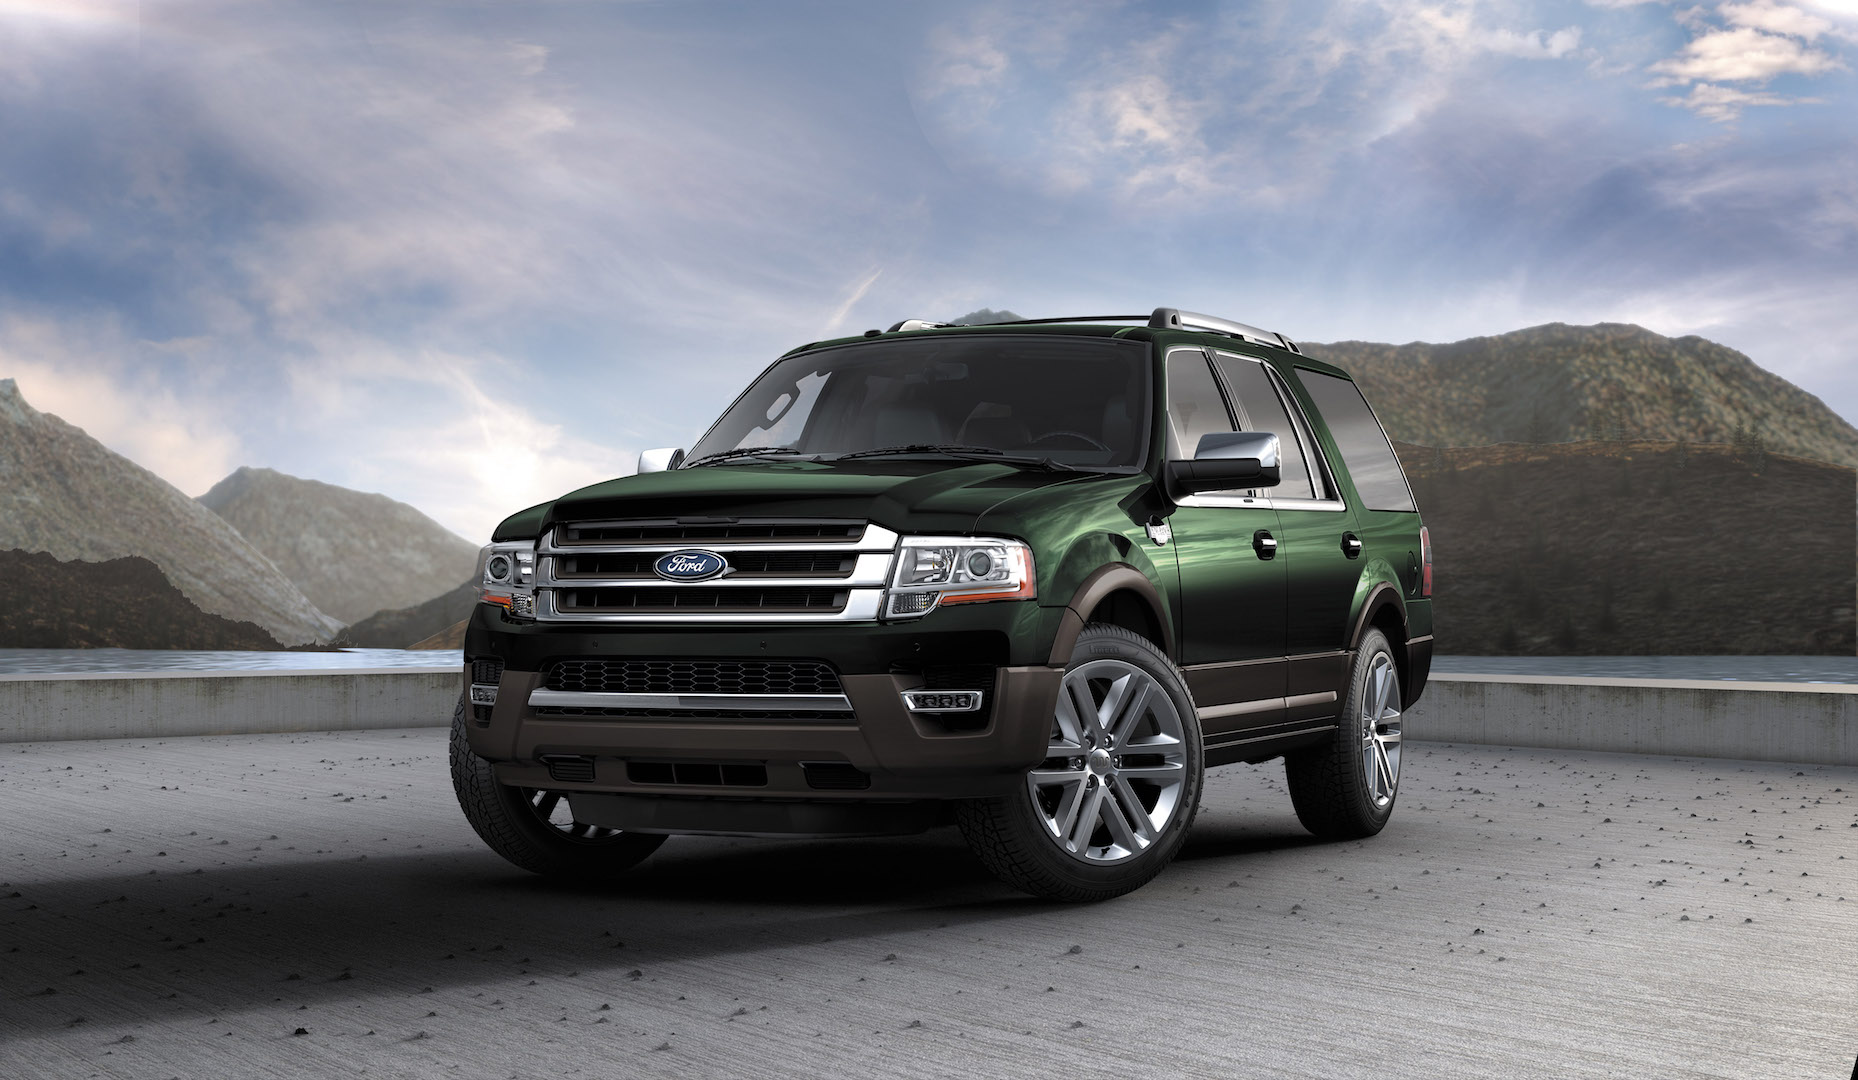 new and used ford expedition prices photos reviews specs the car connection. Black Bedroom Furniture Sets. Home Design Ideas